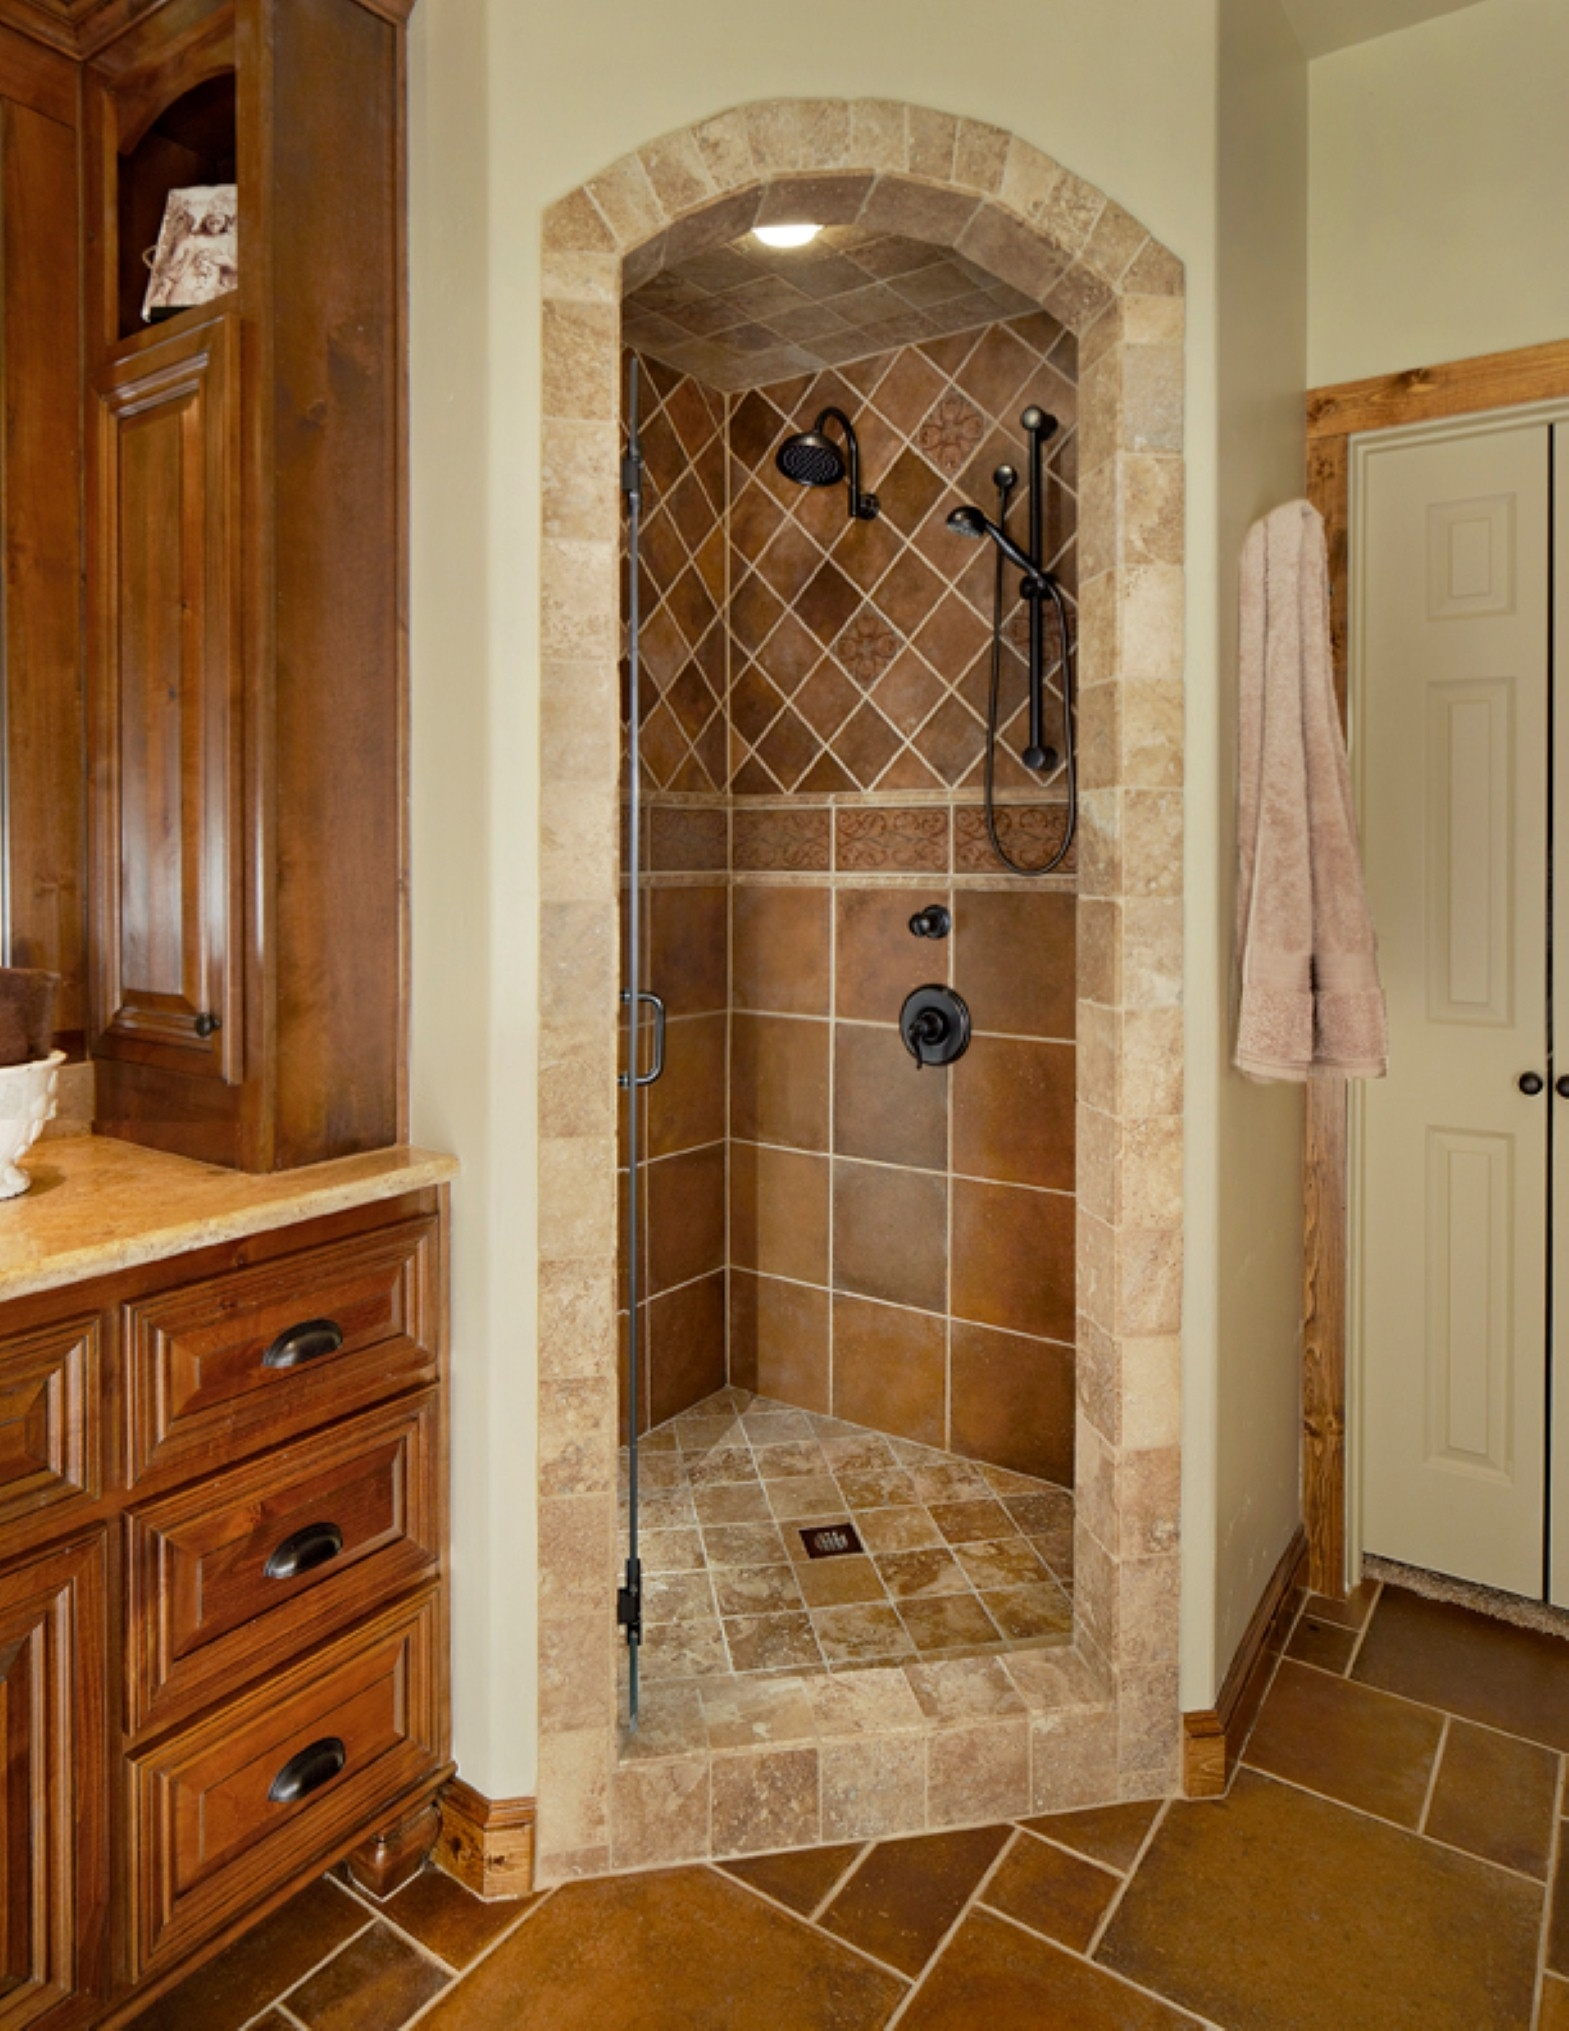 Stylish Bathroom Renovation Ideas With Chic Design Ideas Which Gives A Natural Sensation For Comfort Of Bathroom (Image 13 of 23)